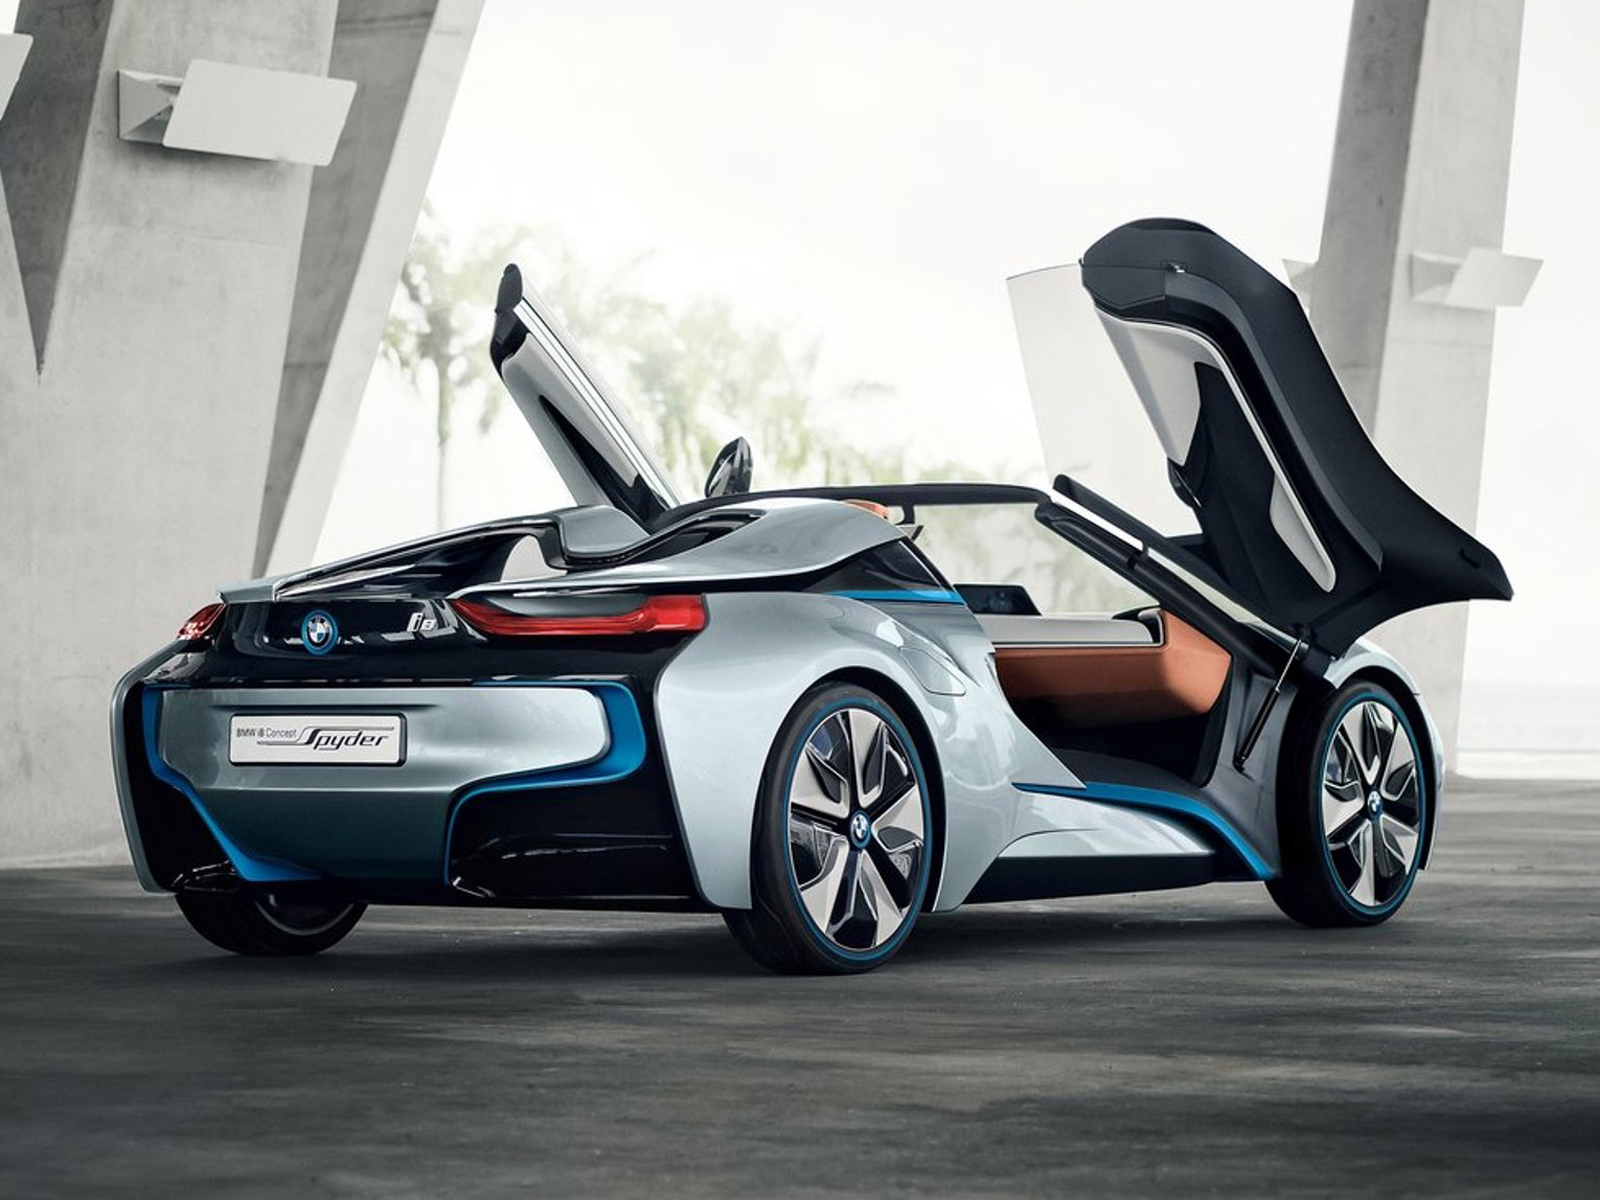 All sports cars sports bikes new and letast bmw hd wallpapers 2013 new and letast bmw hd wallpapers 2013 voltagebd Images